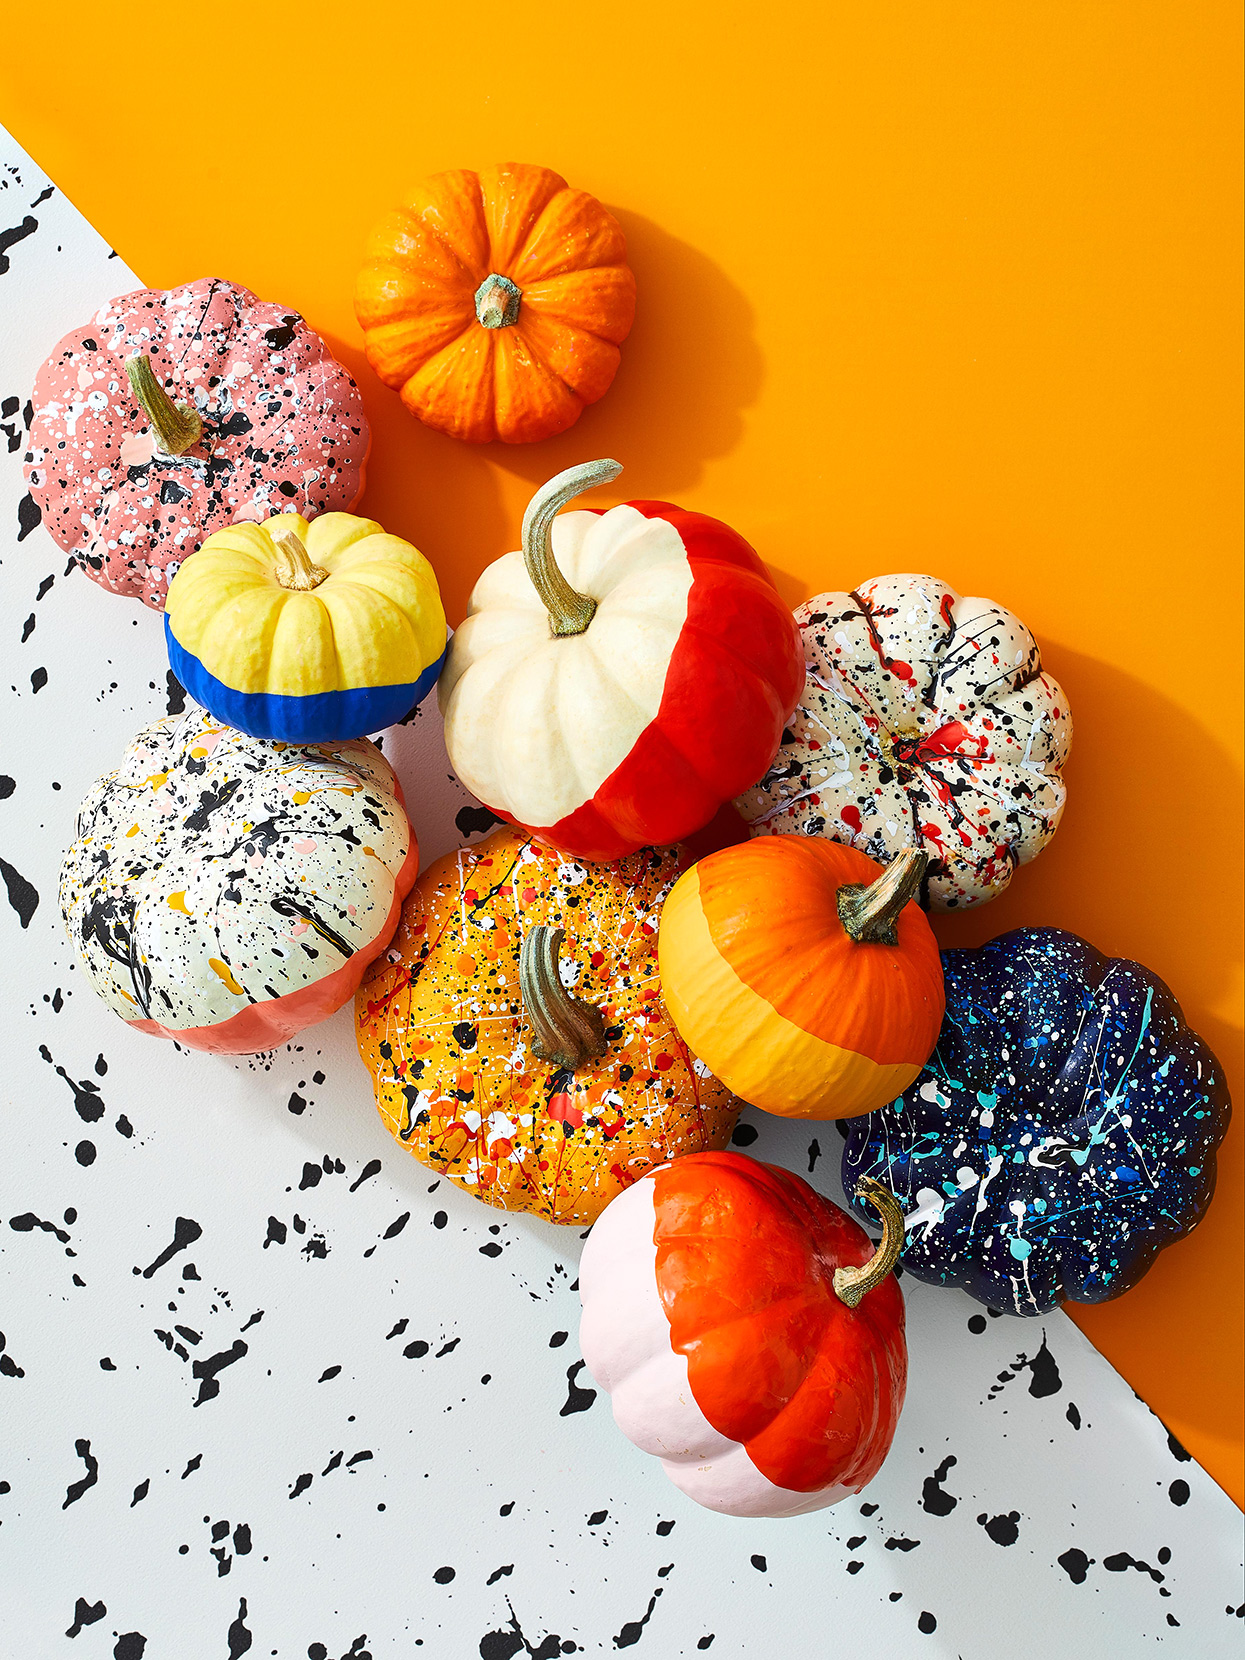 small pumpkins with painted colorblocking and splatter paint